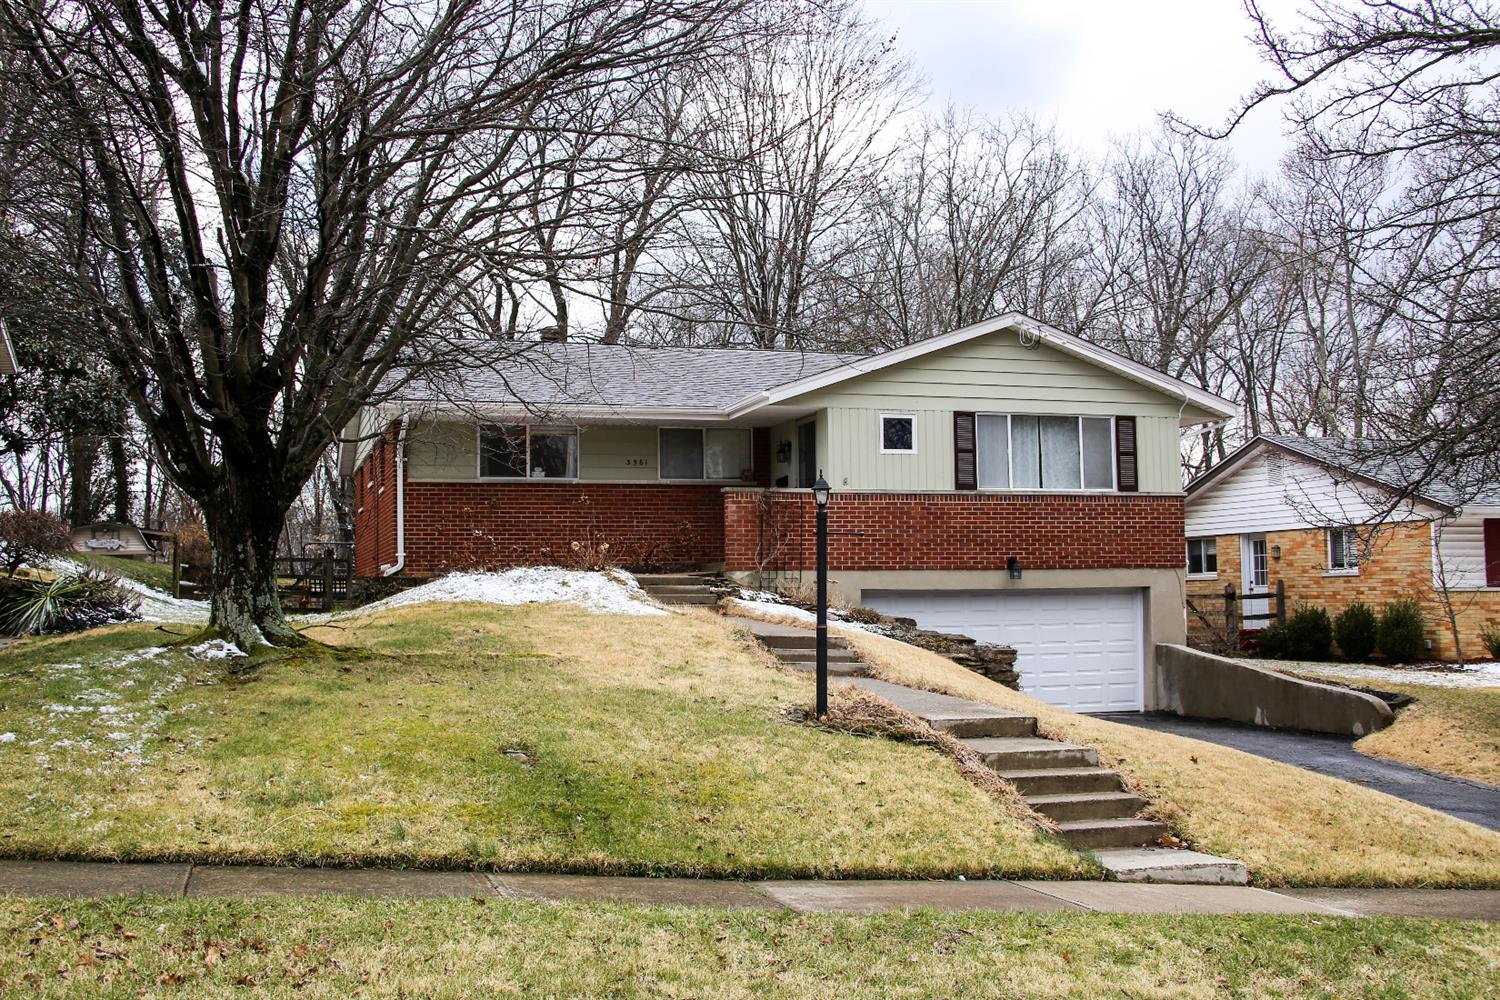 3561 Glengary Ave Dillonvale, OH